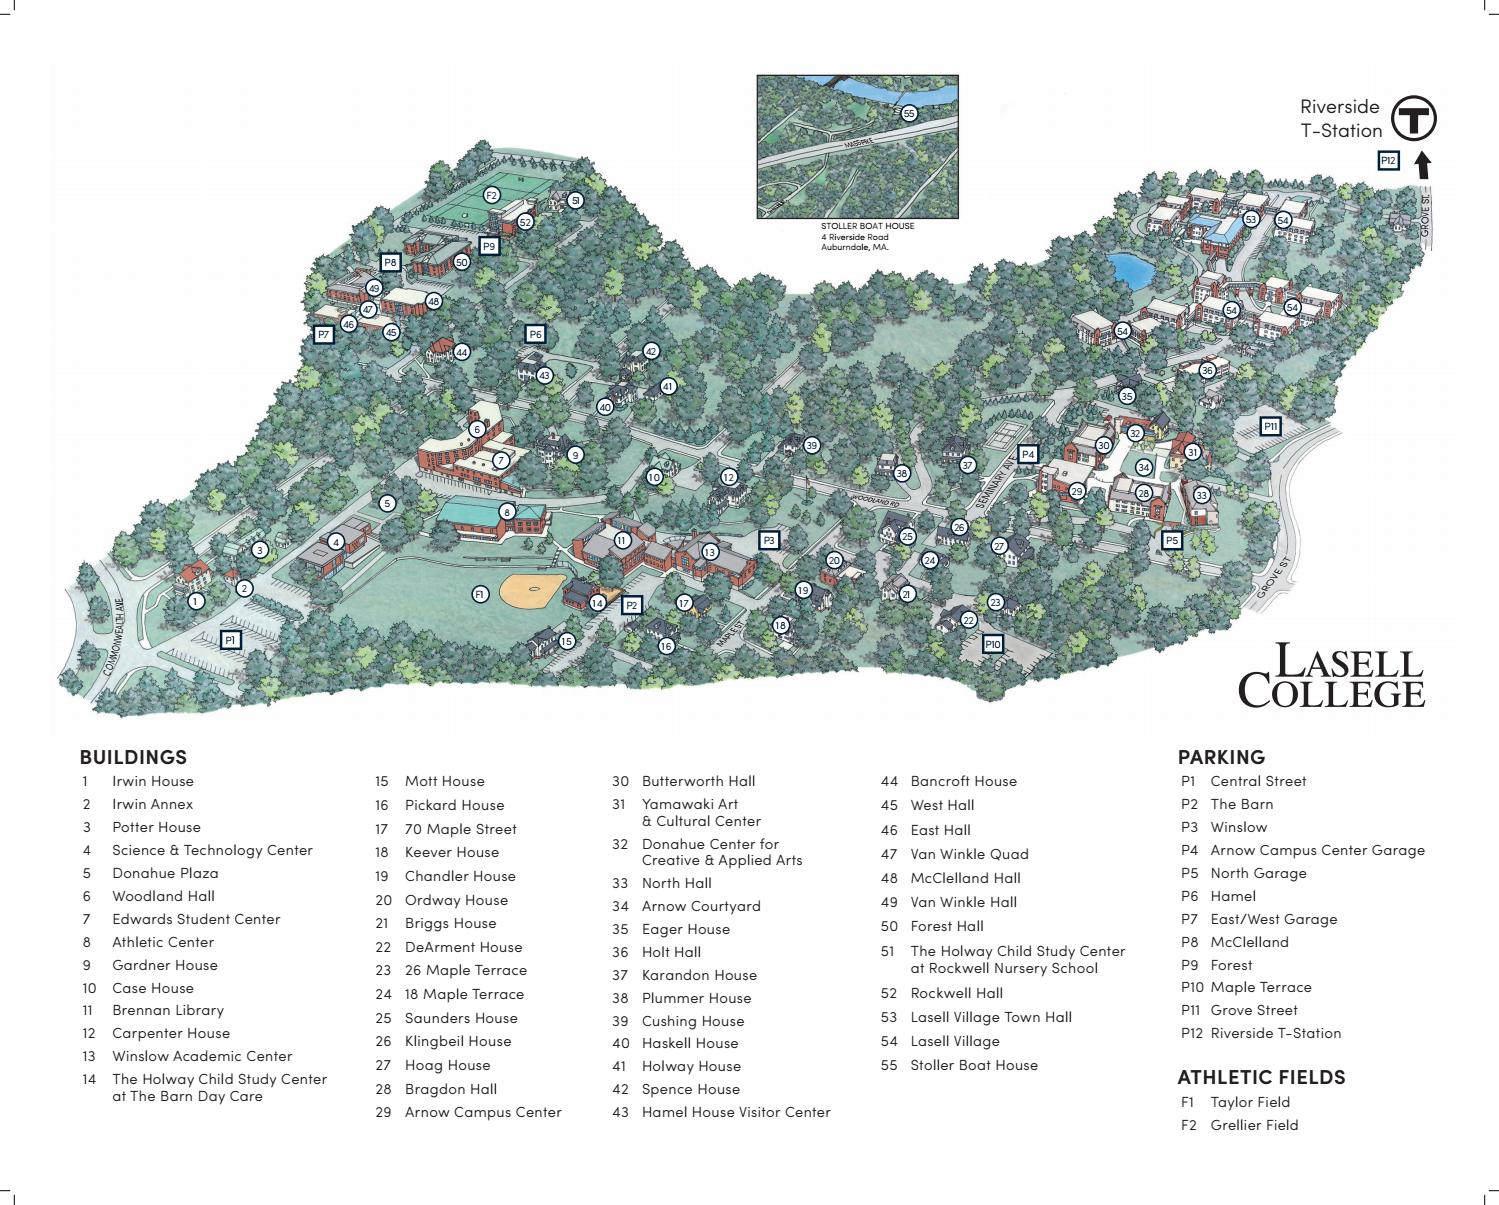 Lasell College Campus Map by Lasell University - issuu on sweet briar campus map, texas lutheran campus map, stanford campus map, delta state campus map, north lamar campus map, william carey campus map, george mason campus map, chico state campus map, cardinal newman campus map, trinity campus map, pittsburg state campus map, upper iowa campus map, university of texas campus map, baylor campus map,